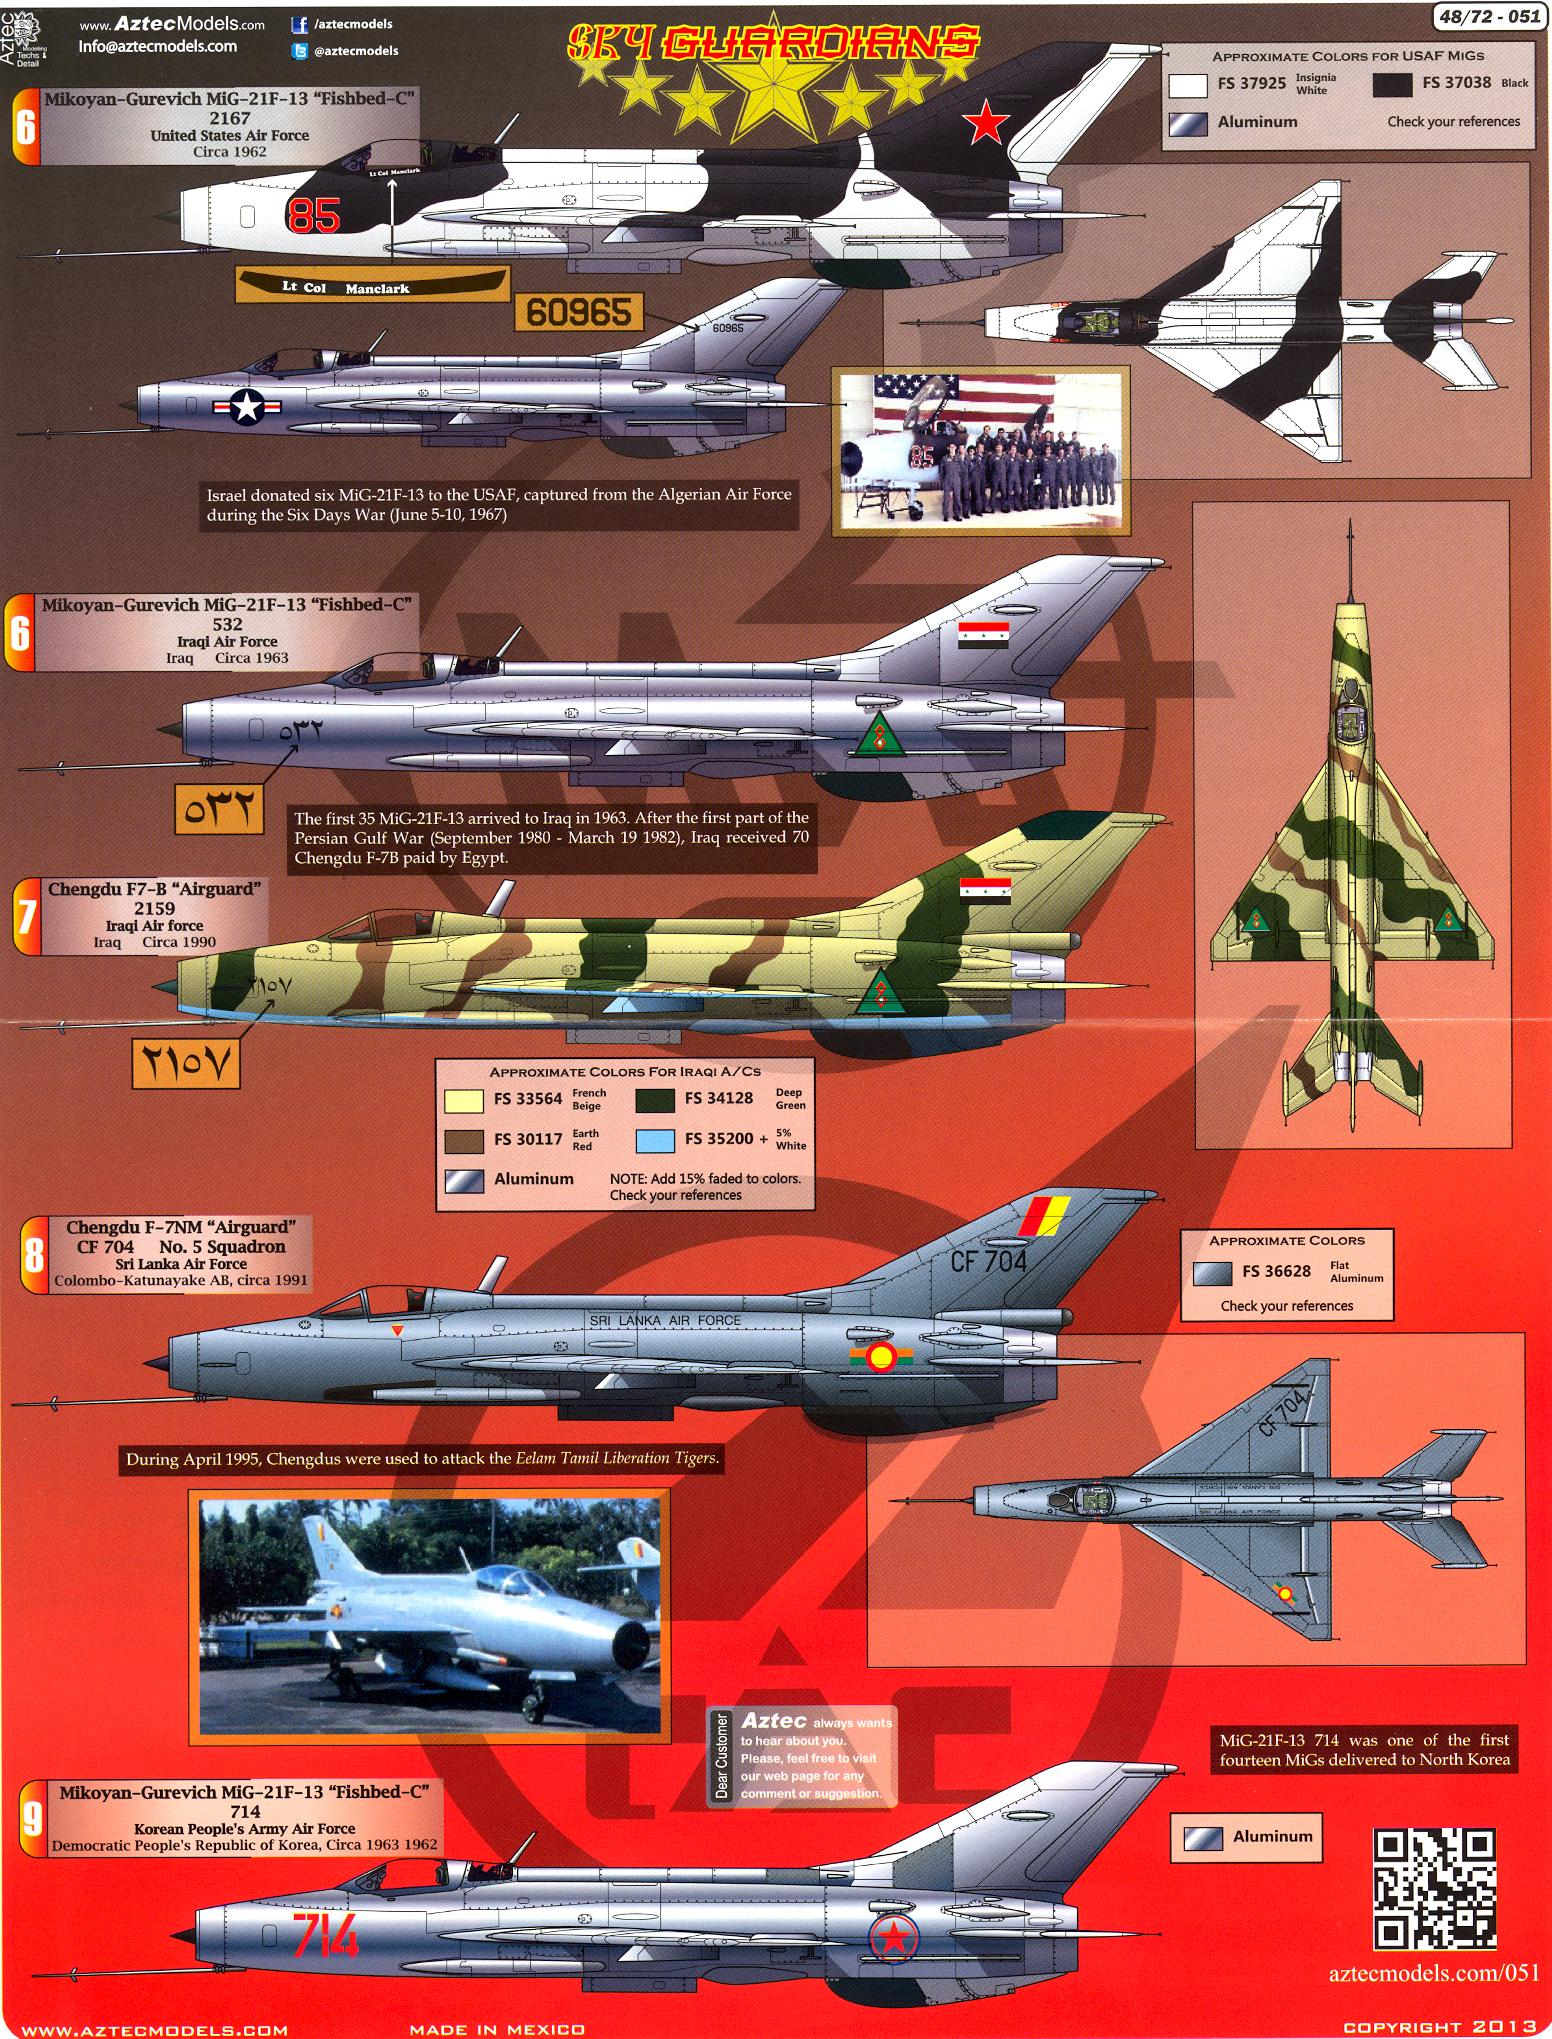 21 International Fashion Magazine You Ll Love: Aztec Decals 1/48 SKY GUARDIANS MIKOYAN MiG-21 In